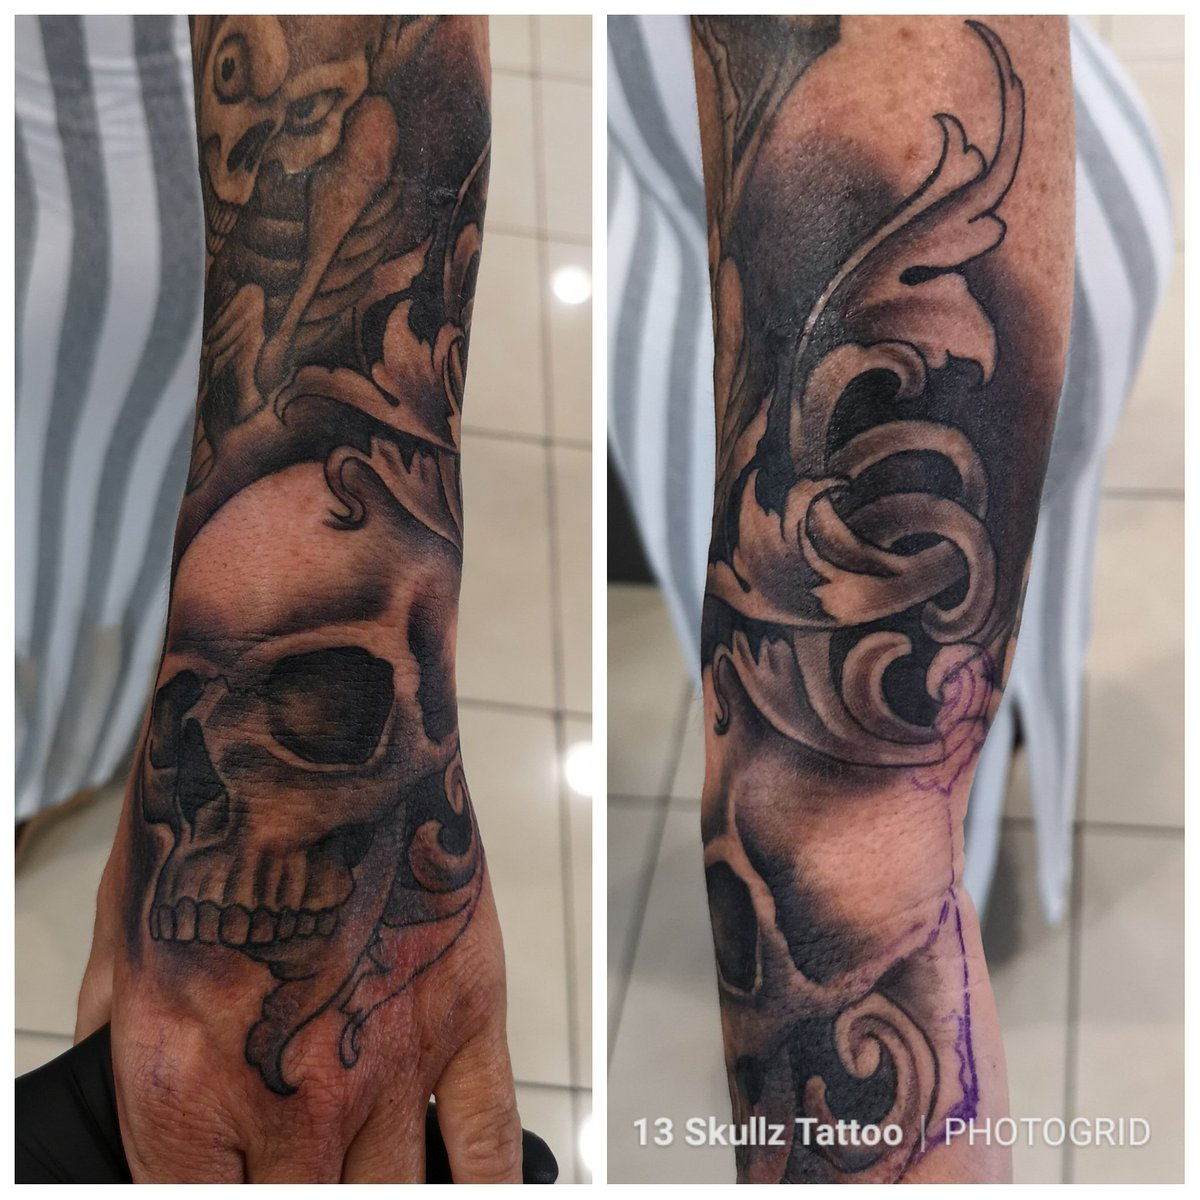 Tatoo Mannheim 13 Skullz Tattoo On Twitter